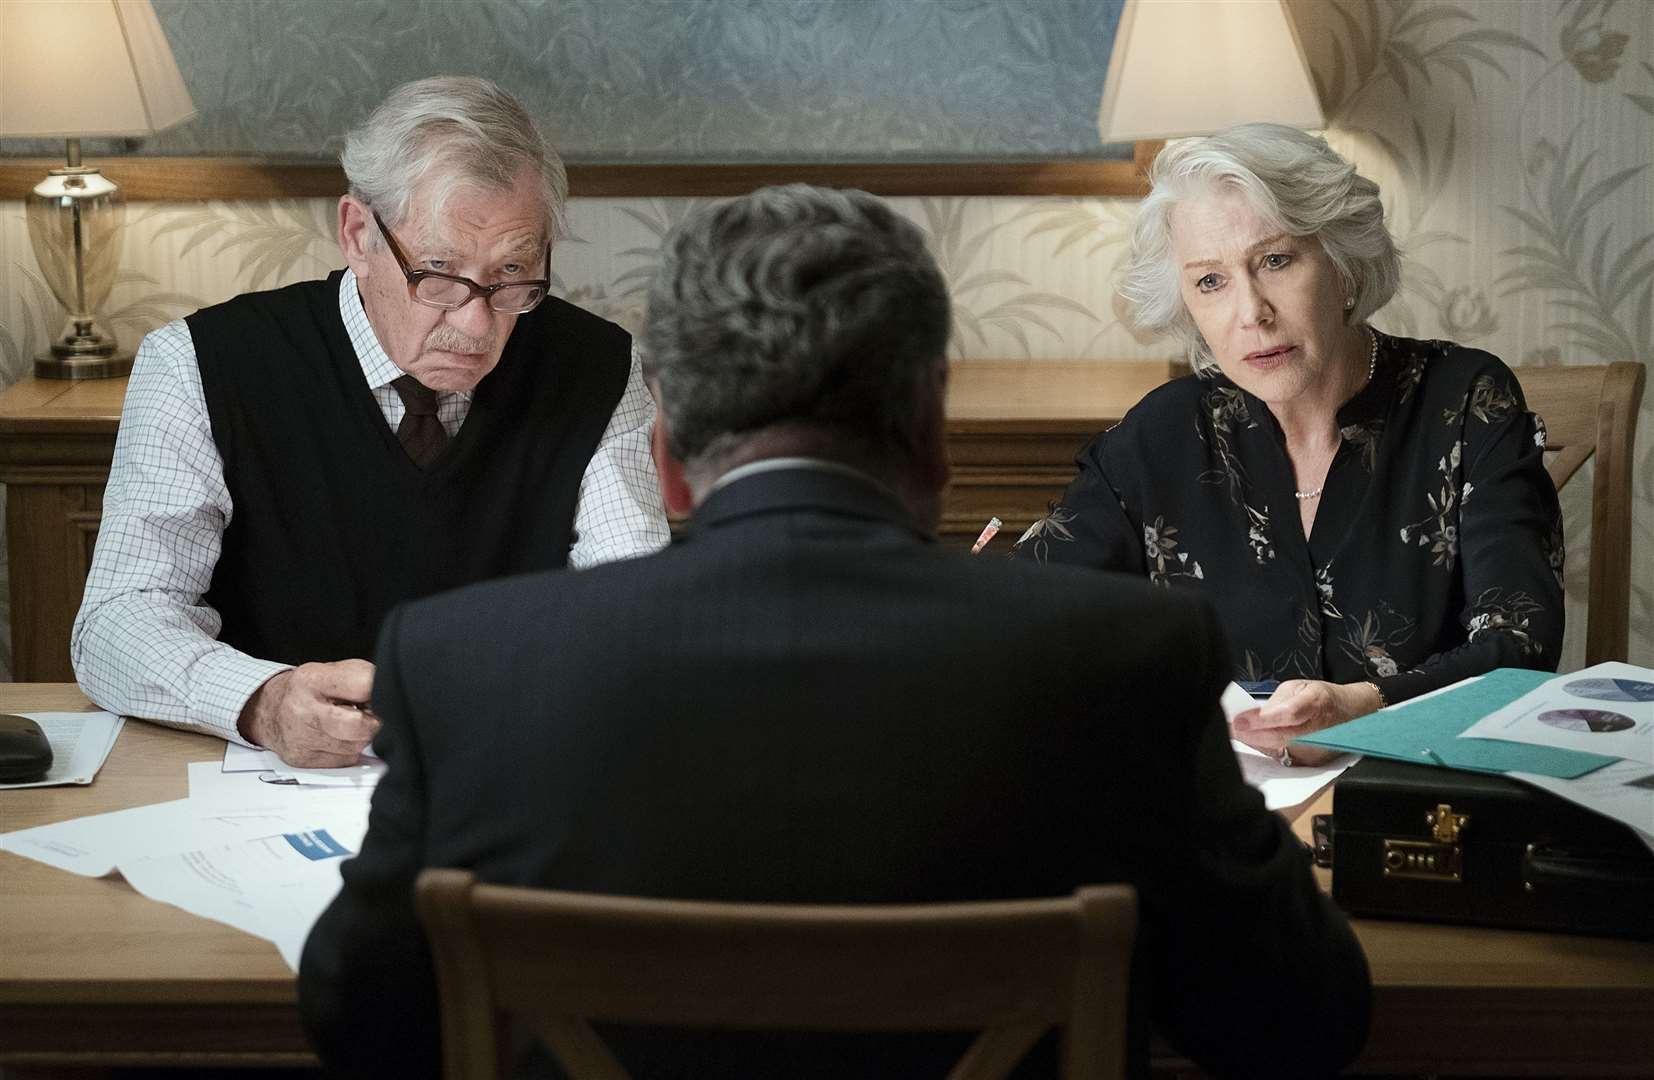 Undated film still handout from The Good Liar. Pictured: Sir Ian McKellen as Roy Courtnay, Jim Carter as Vincent and Dame Helen Mirren as Betty McLeish. PA Feature SHOWBIZ Film Reviews. Picture credit should read: PA Photo/Warner Bros. Entertainment Inc./Chiabella James. All Rights Reserved. WARNING: This picture must only be used to accompany PA Feature SHOWBIZ Film Reviews. (20887779)